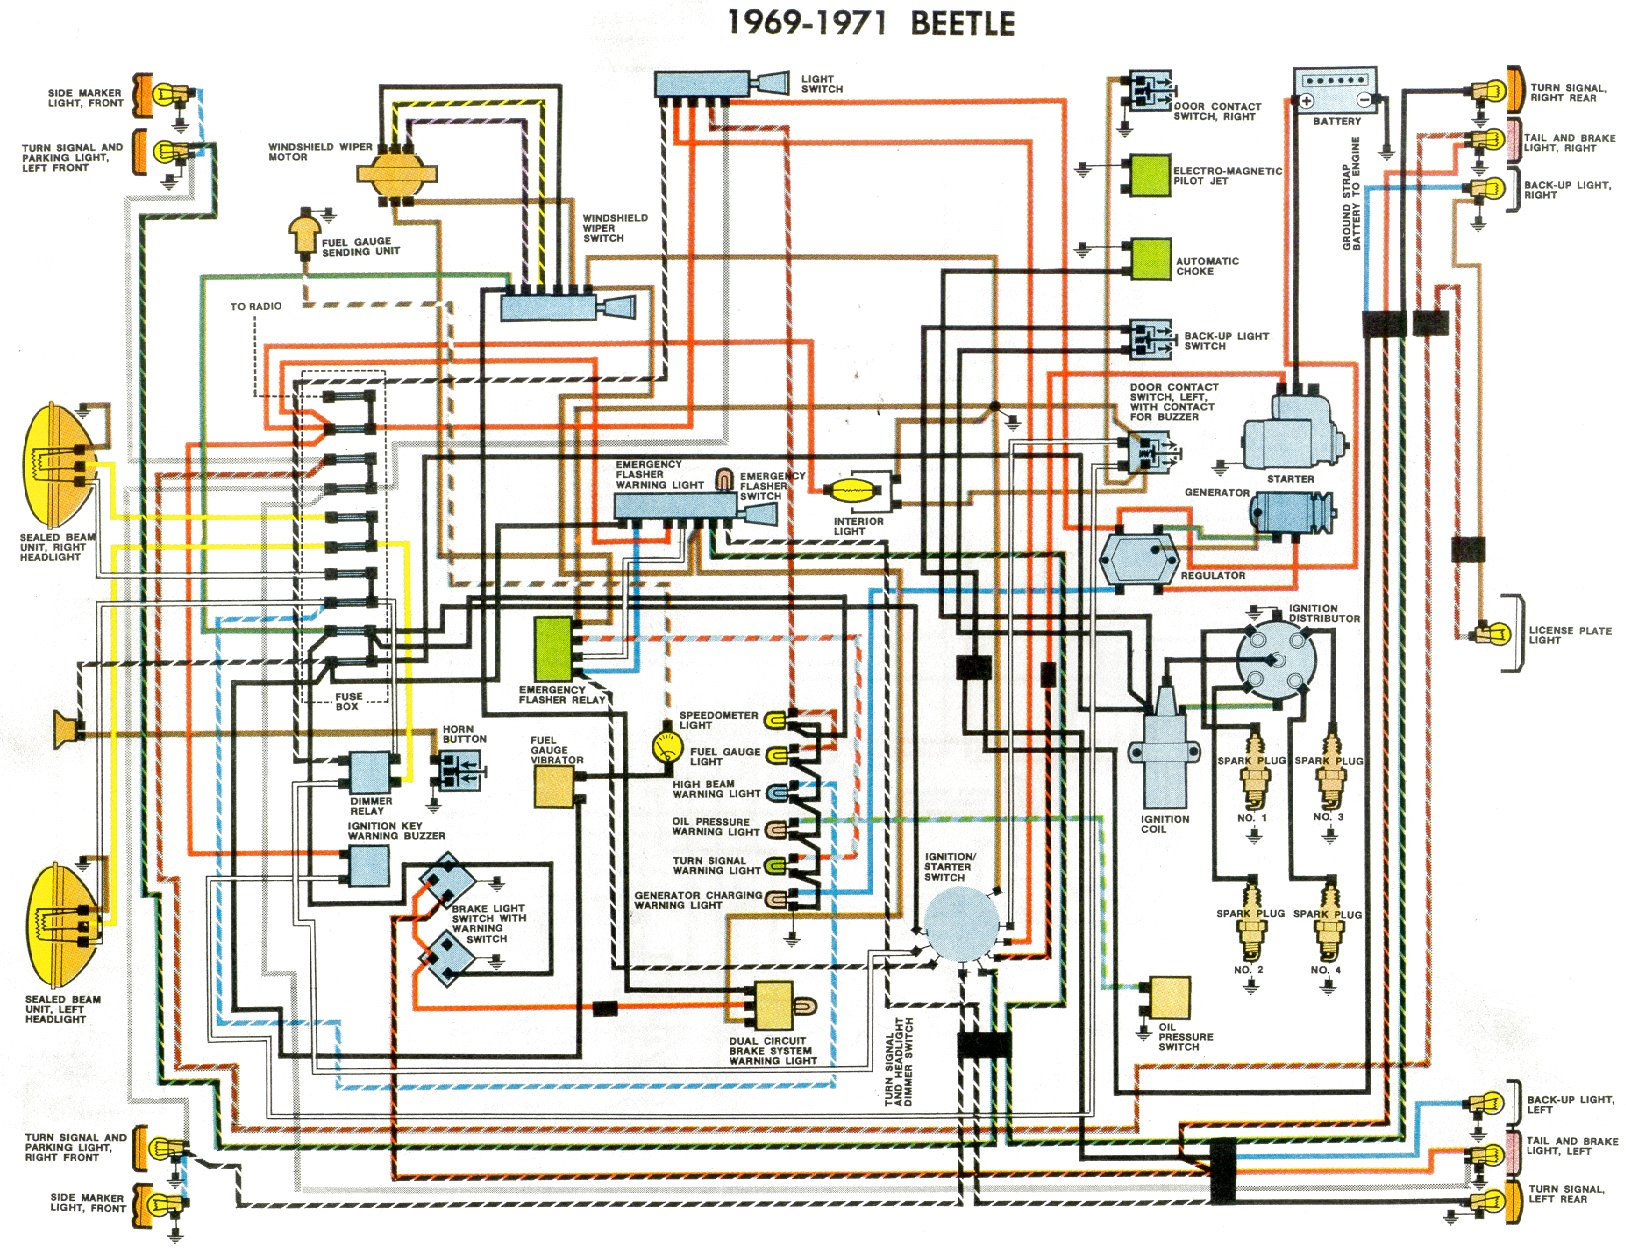 bug 69+71 vw bug fuel gauge schematic library of wiring diagrams \u2022